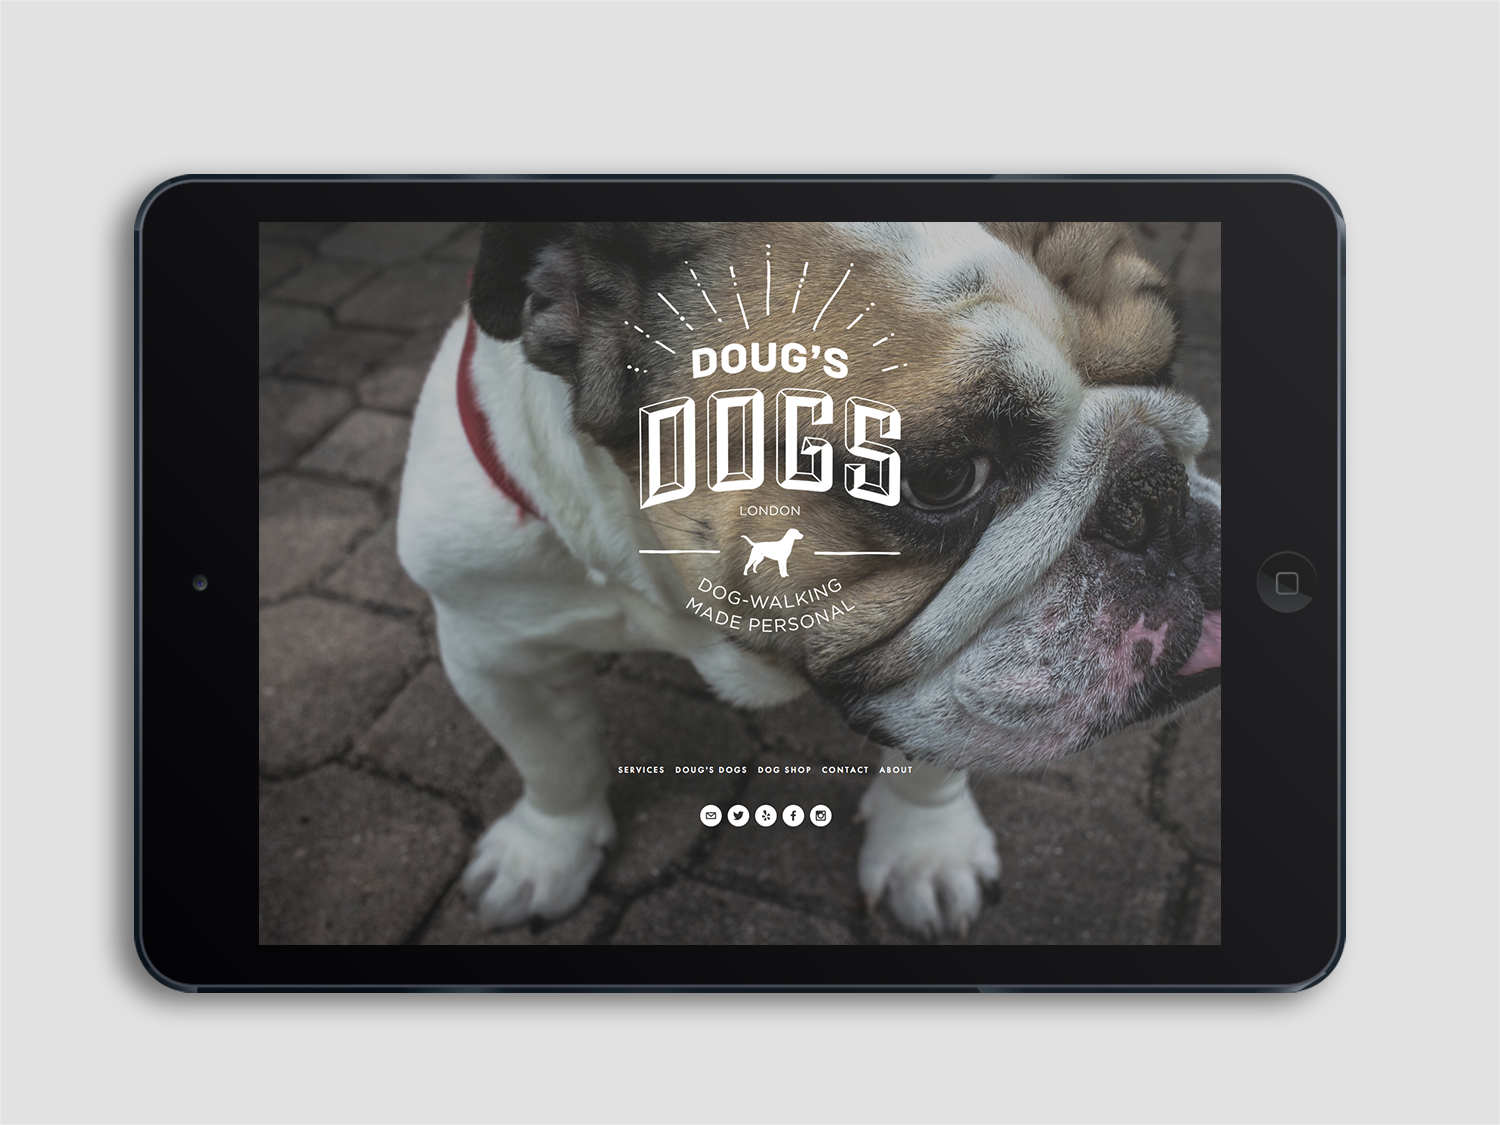 Image of Doug's Dogs website